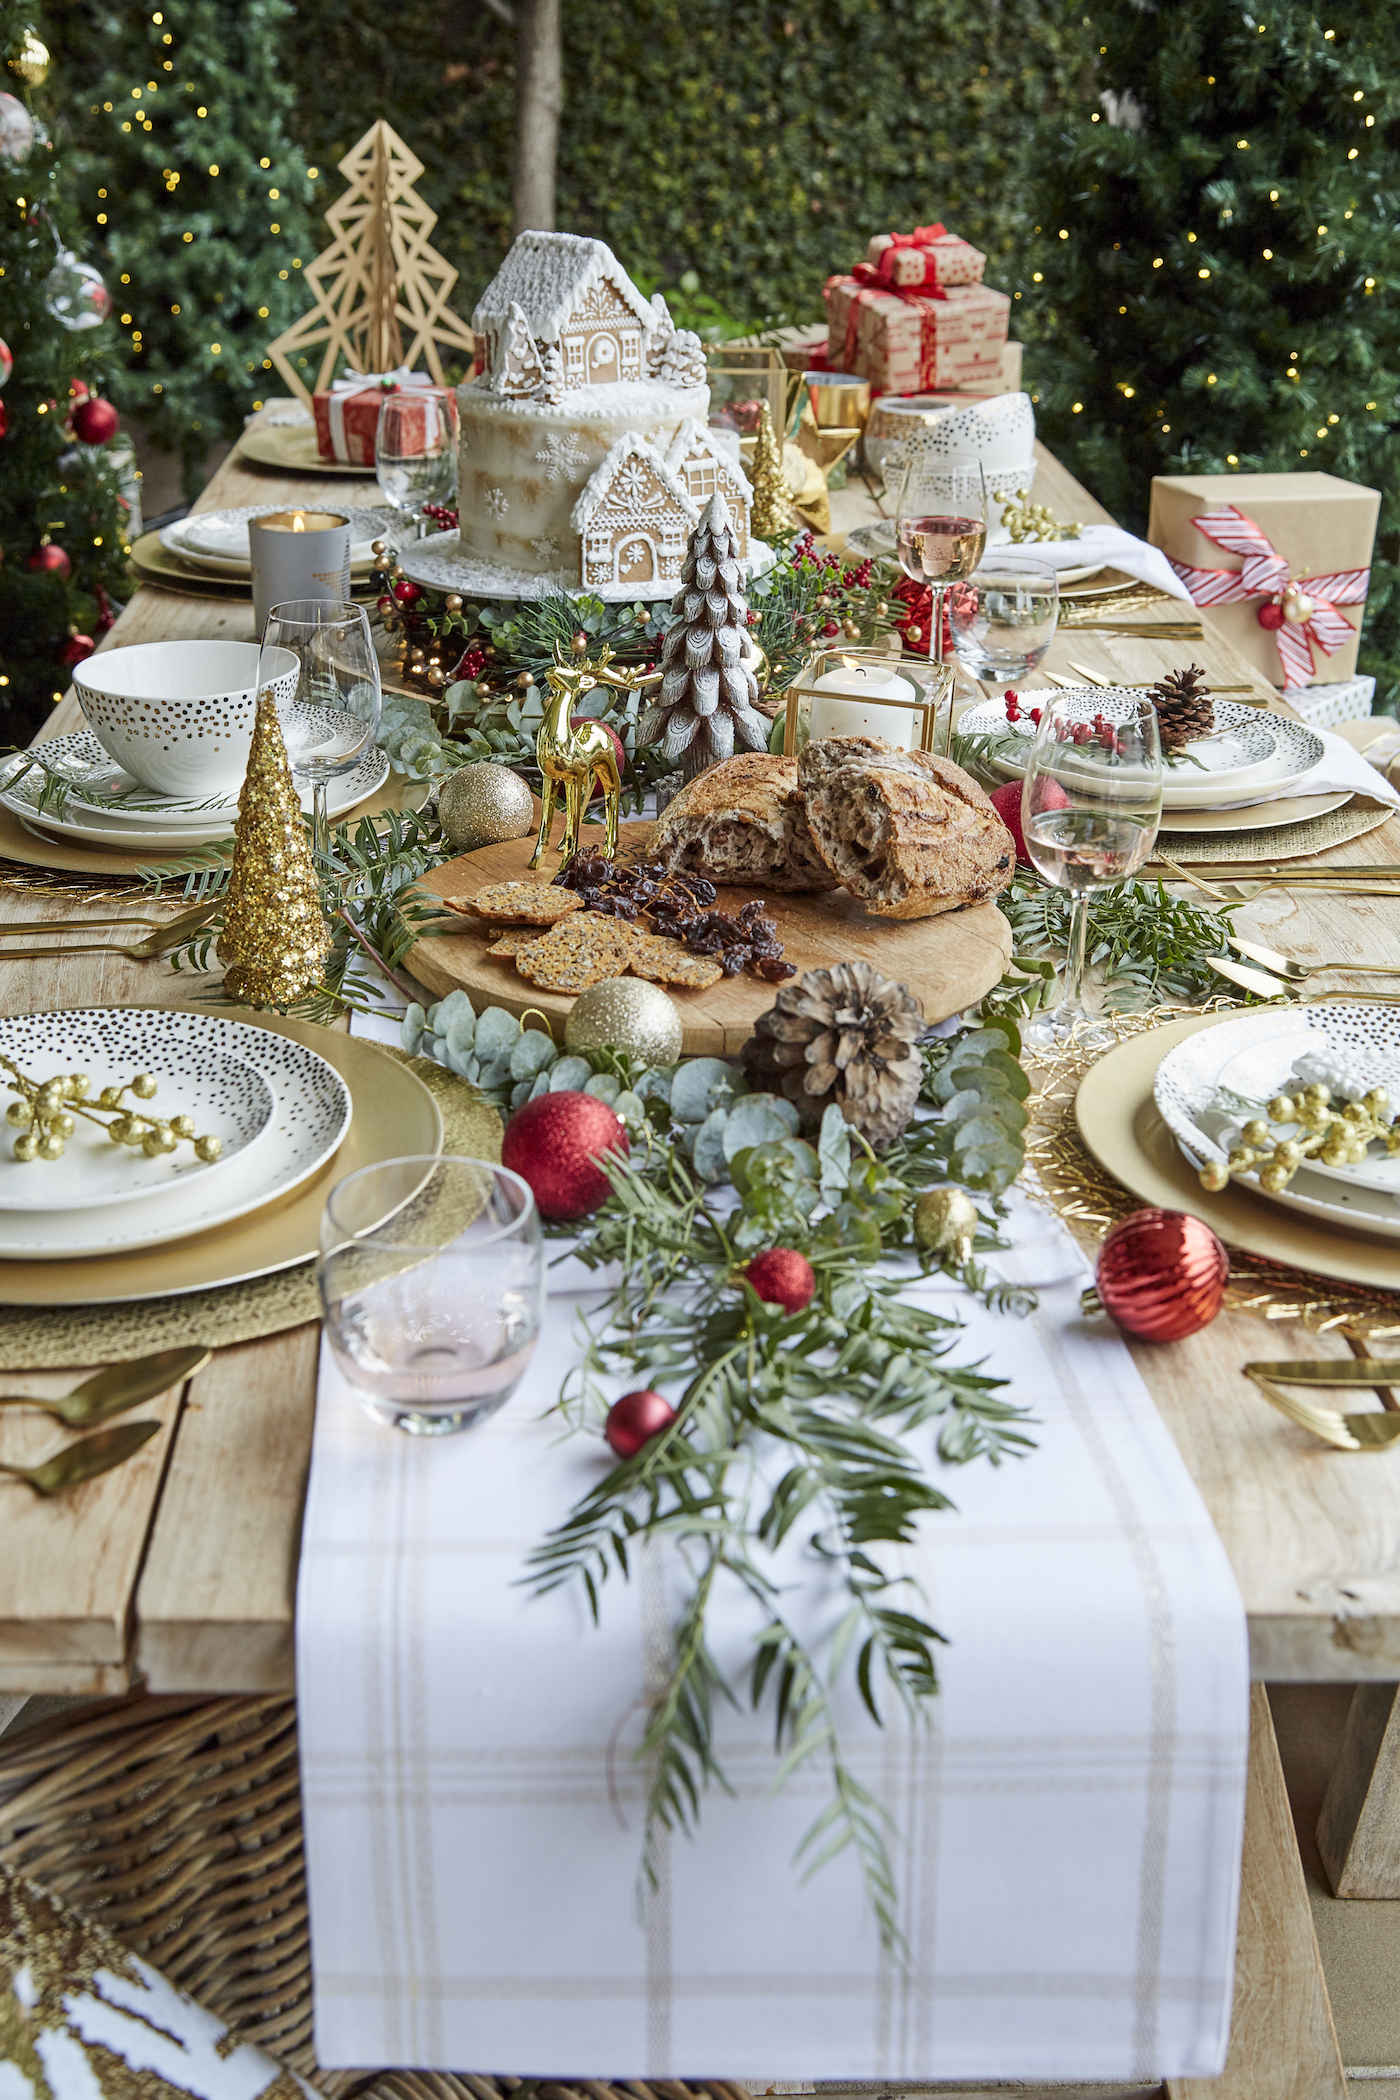 How Lucky Are We To Have Christmas In The Summer Time Decorate Your Outdoor Table Christmas Centerpieces Christmas Table Settings Christmas Table Decorations